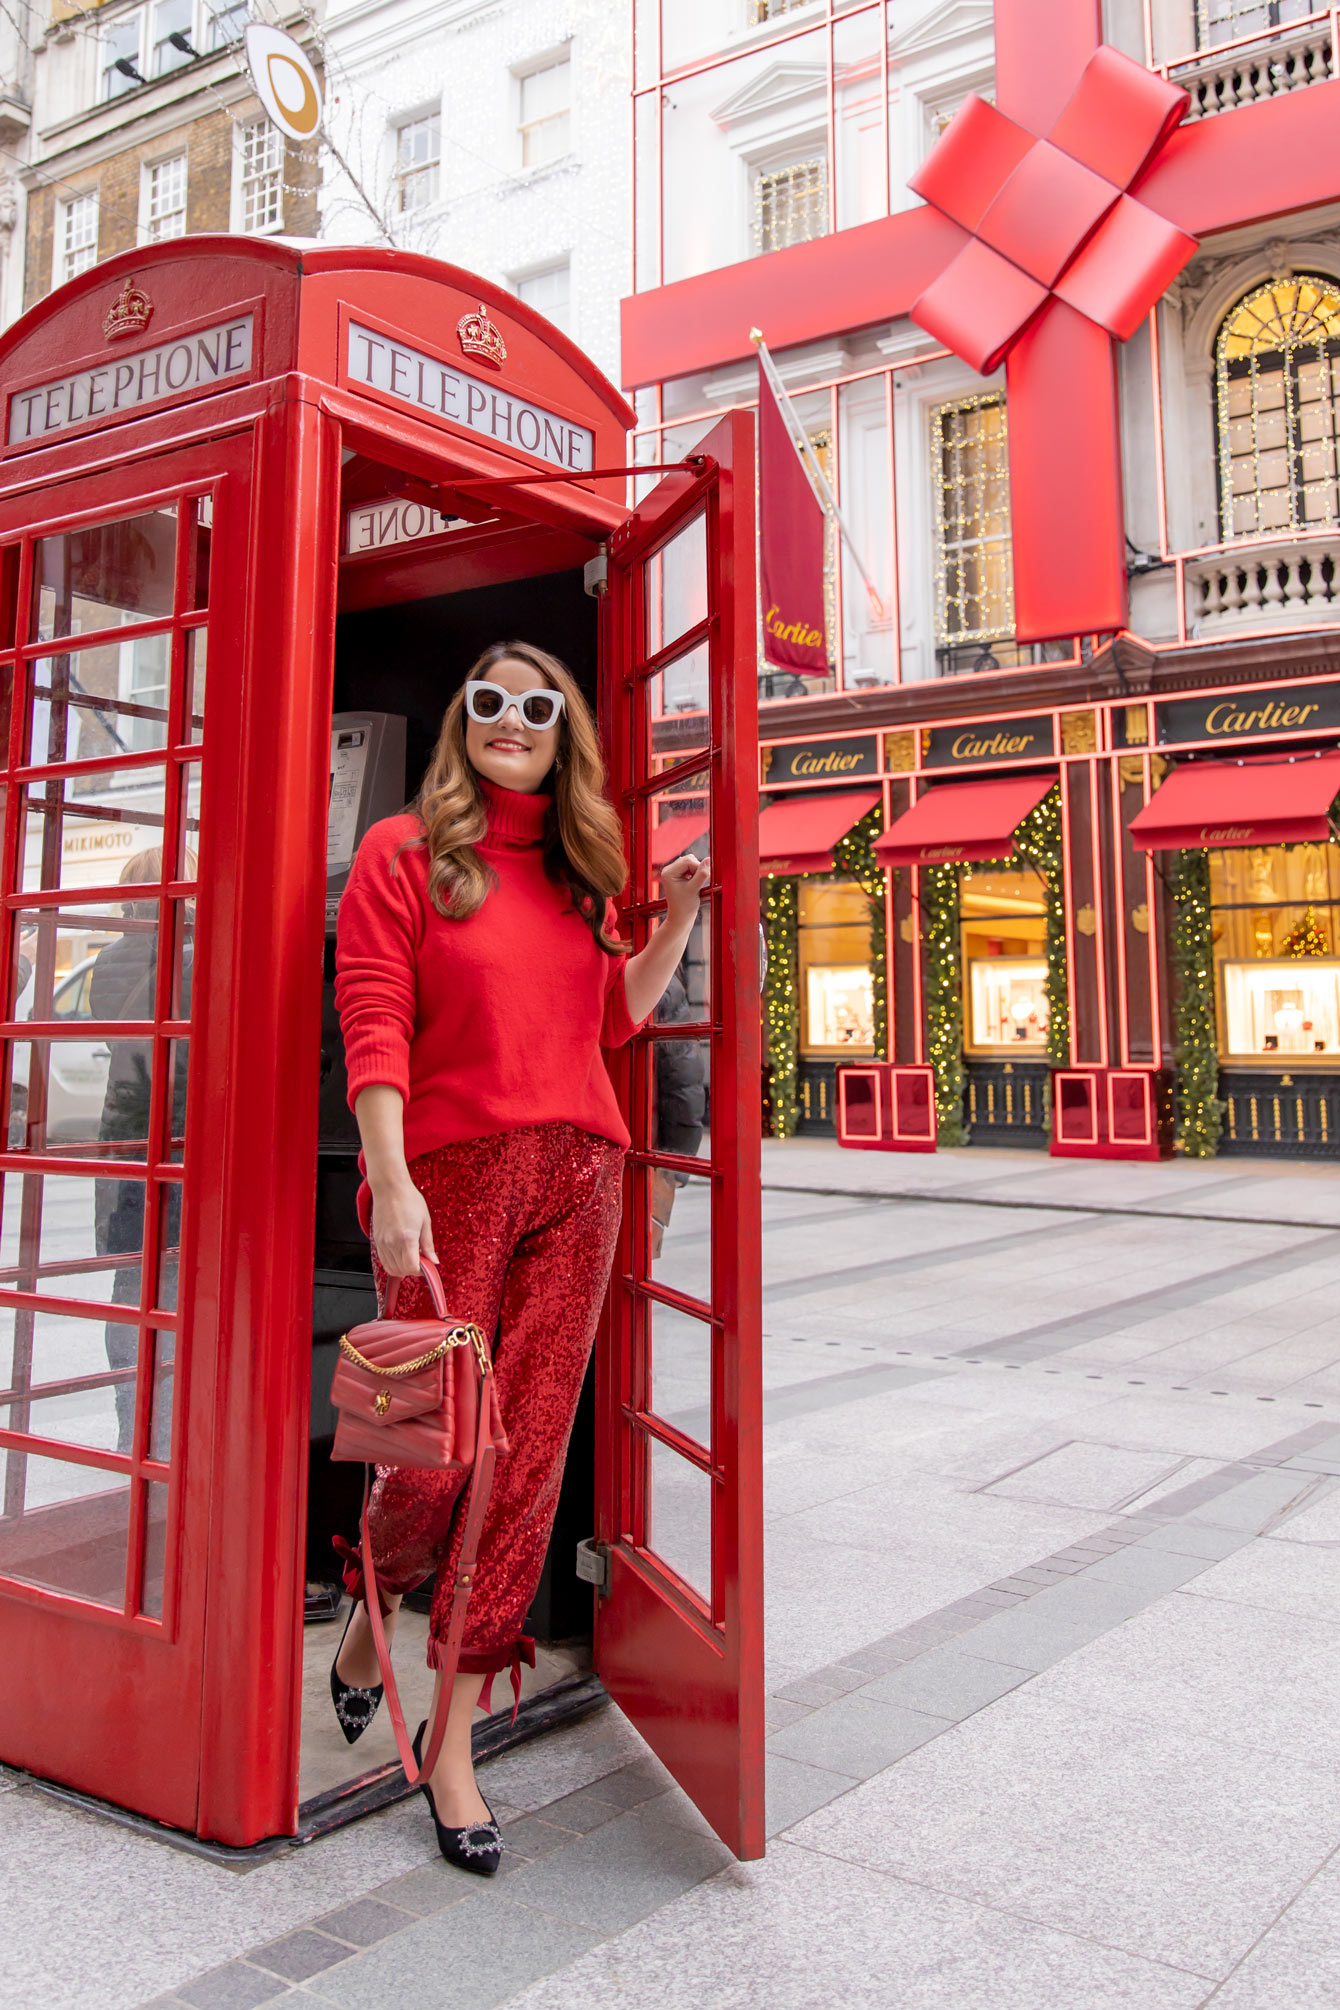 London Telephone Booth Locations